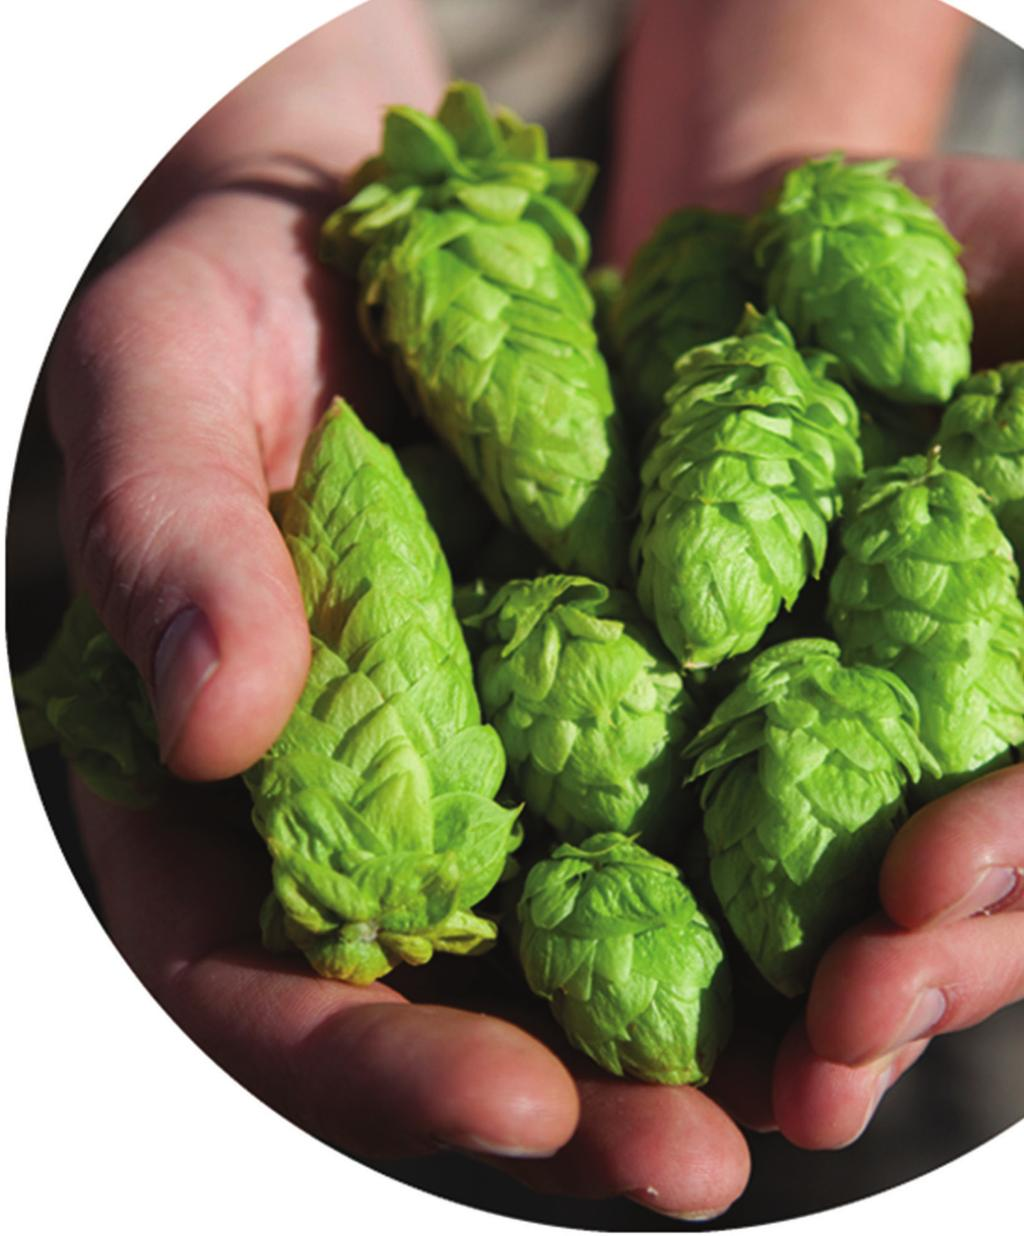 Green and Clean We use only the highest quality hop cones to ensure we produce the best quality extracts for our customers. Our extraction technologies are green and clean.